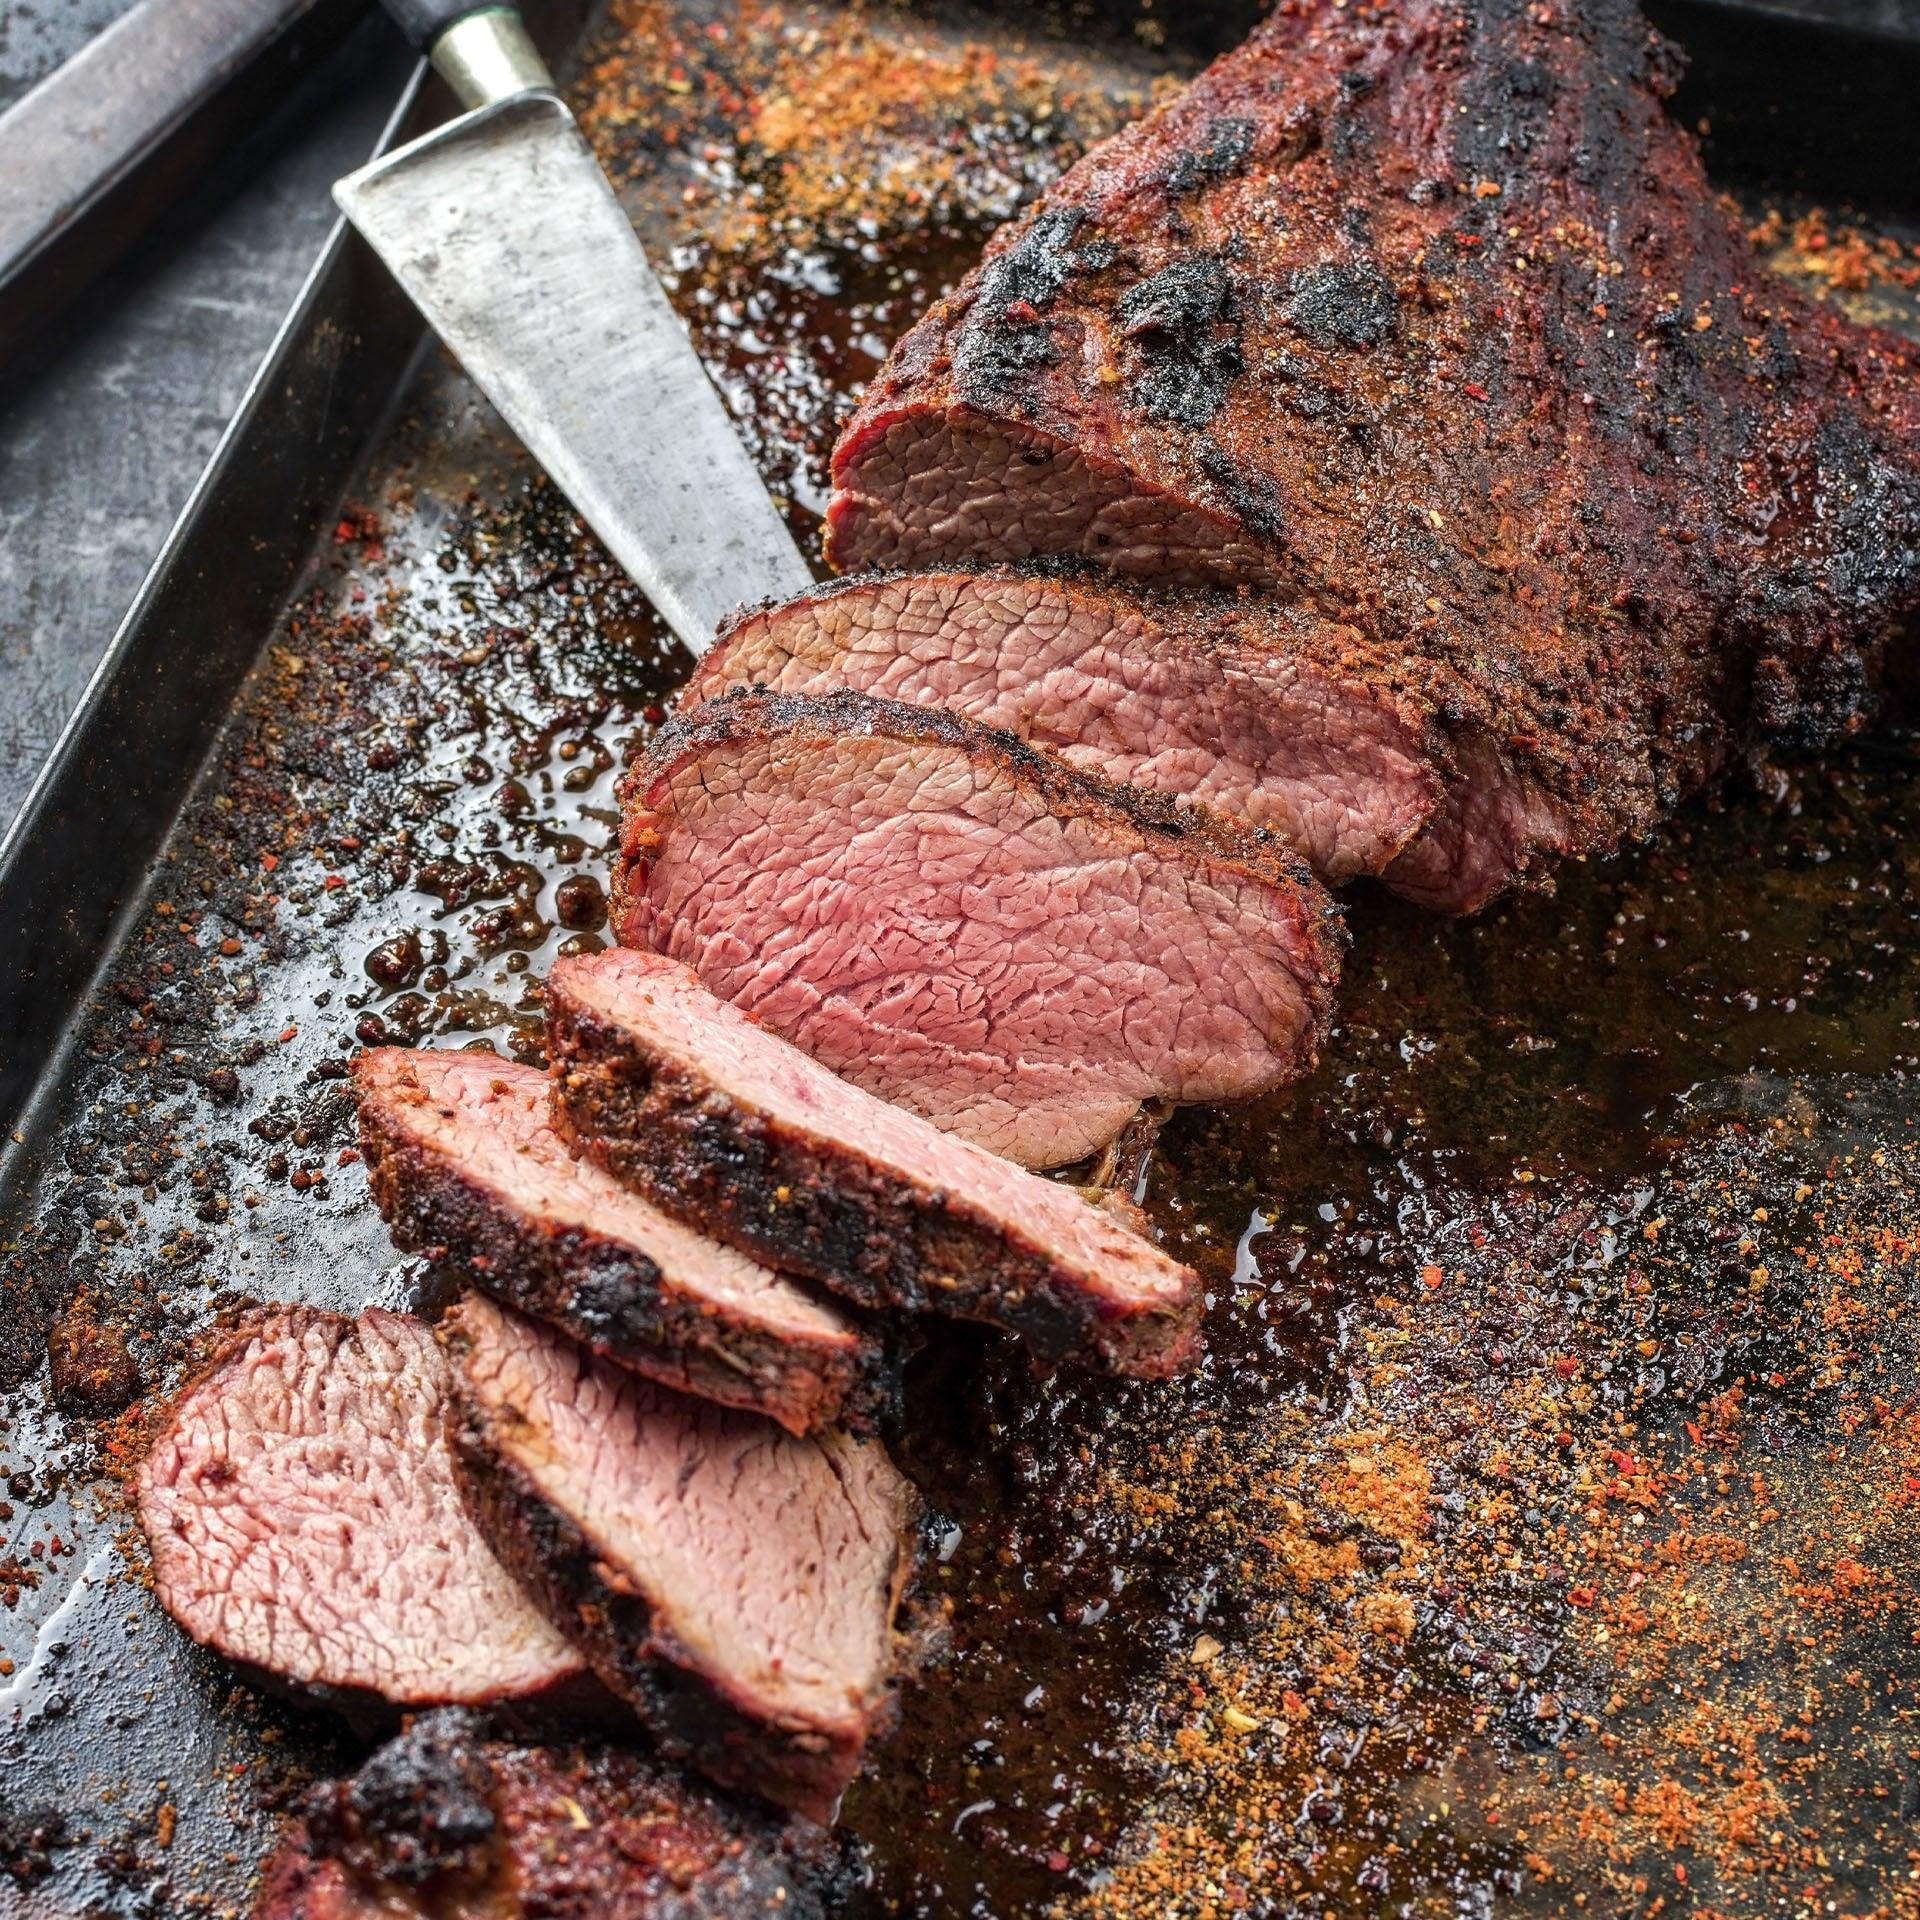 Grass-Fed Beef Big Steak Pack - $129 for 10 steaks and 8-9 pounds, Free Shipping